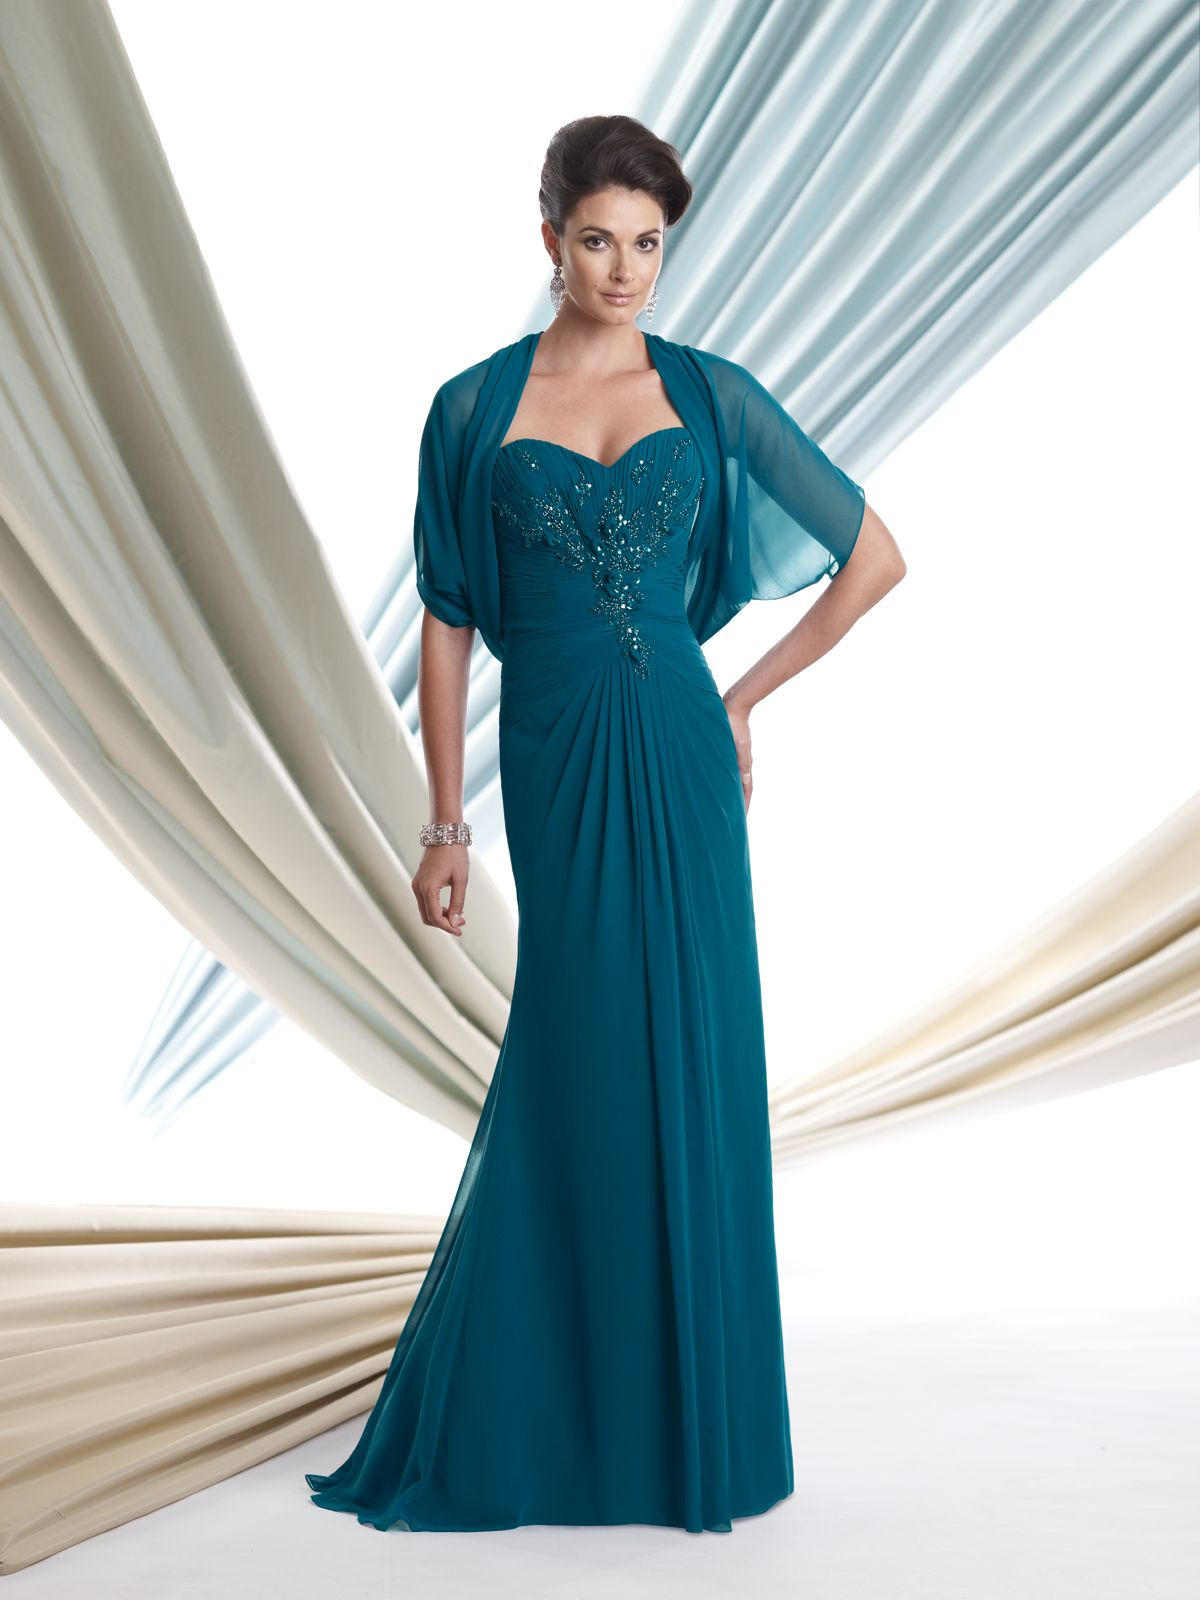 Two-piece silk chiffon dress set, strapless A-line dress with sweetheart neckline, directionally ruched bodice accented with hand-beaded motif, gathered inverted Basque waistline, matching shrug jacket. Removable straps included. Sizes:4 – 20, 16W – 26W